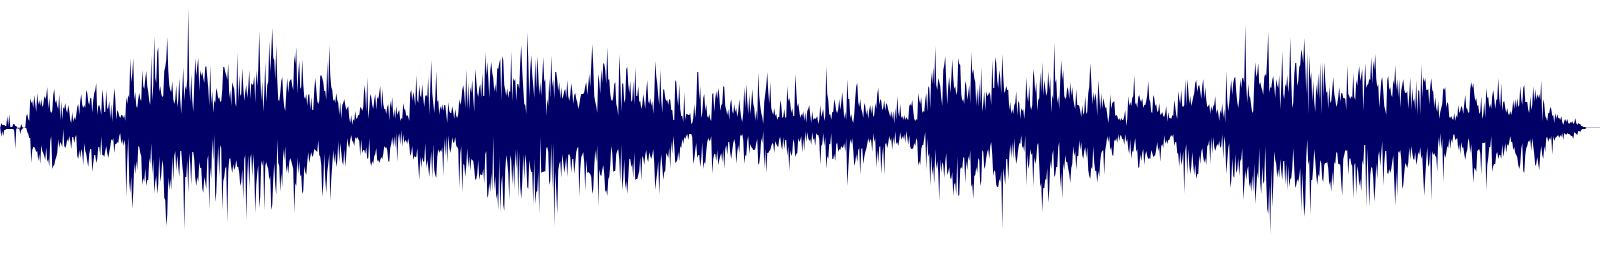 waveform of track #113583